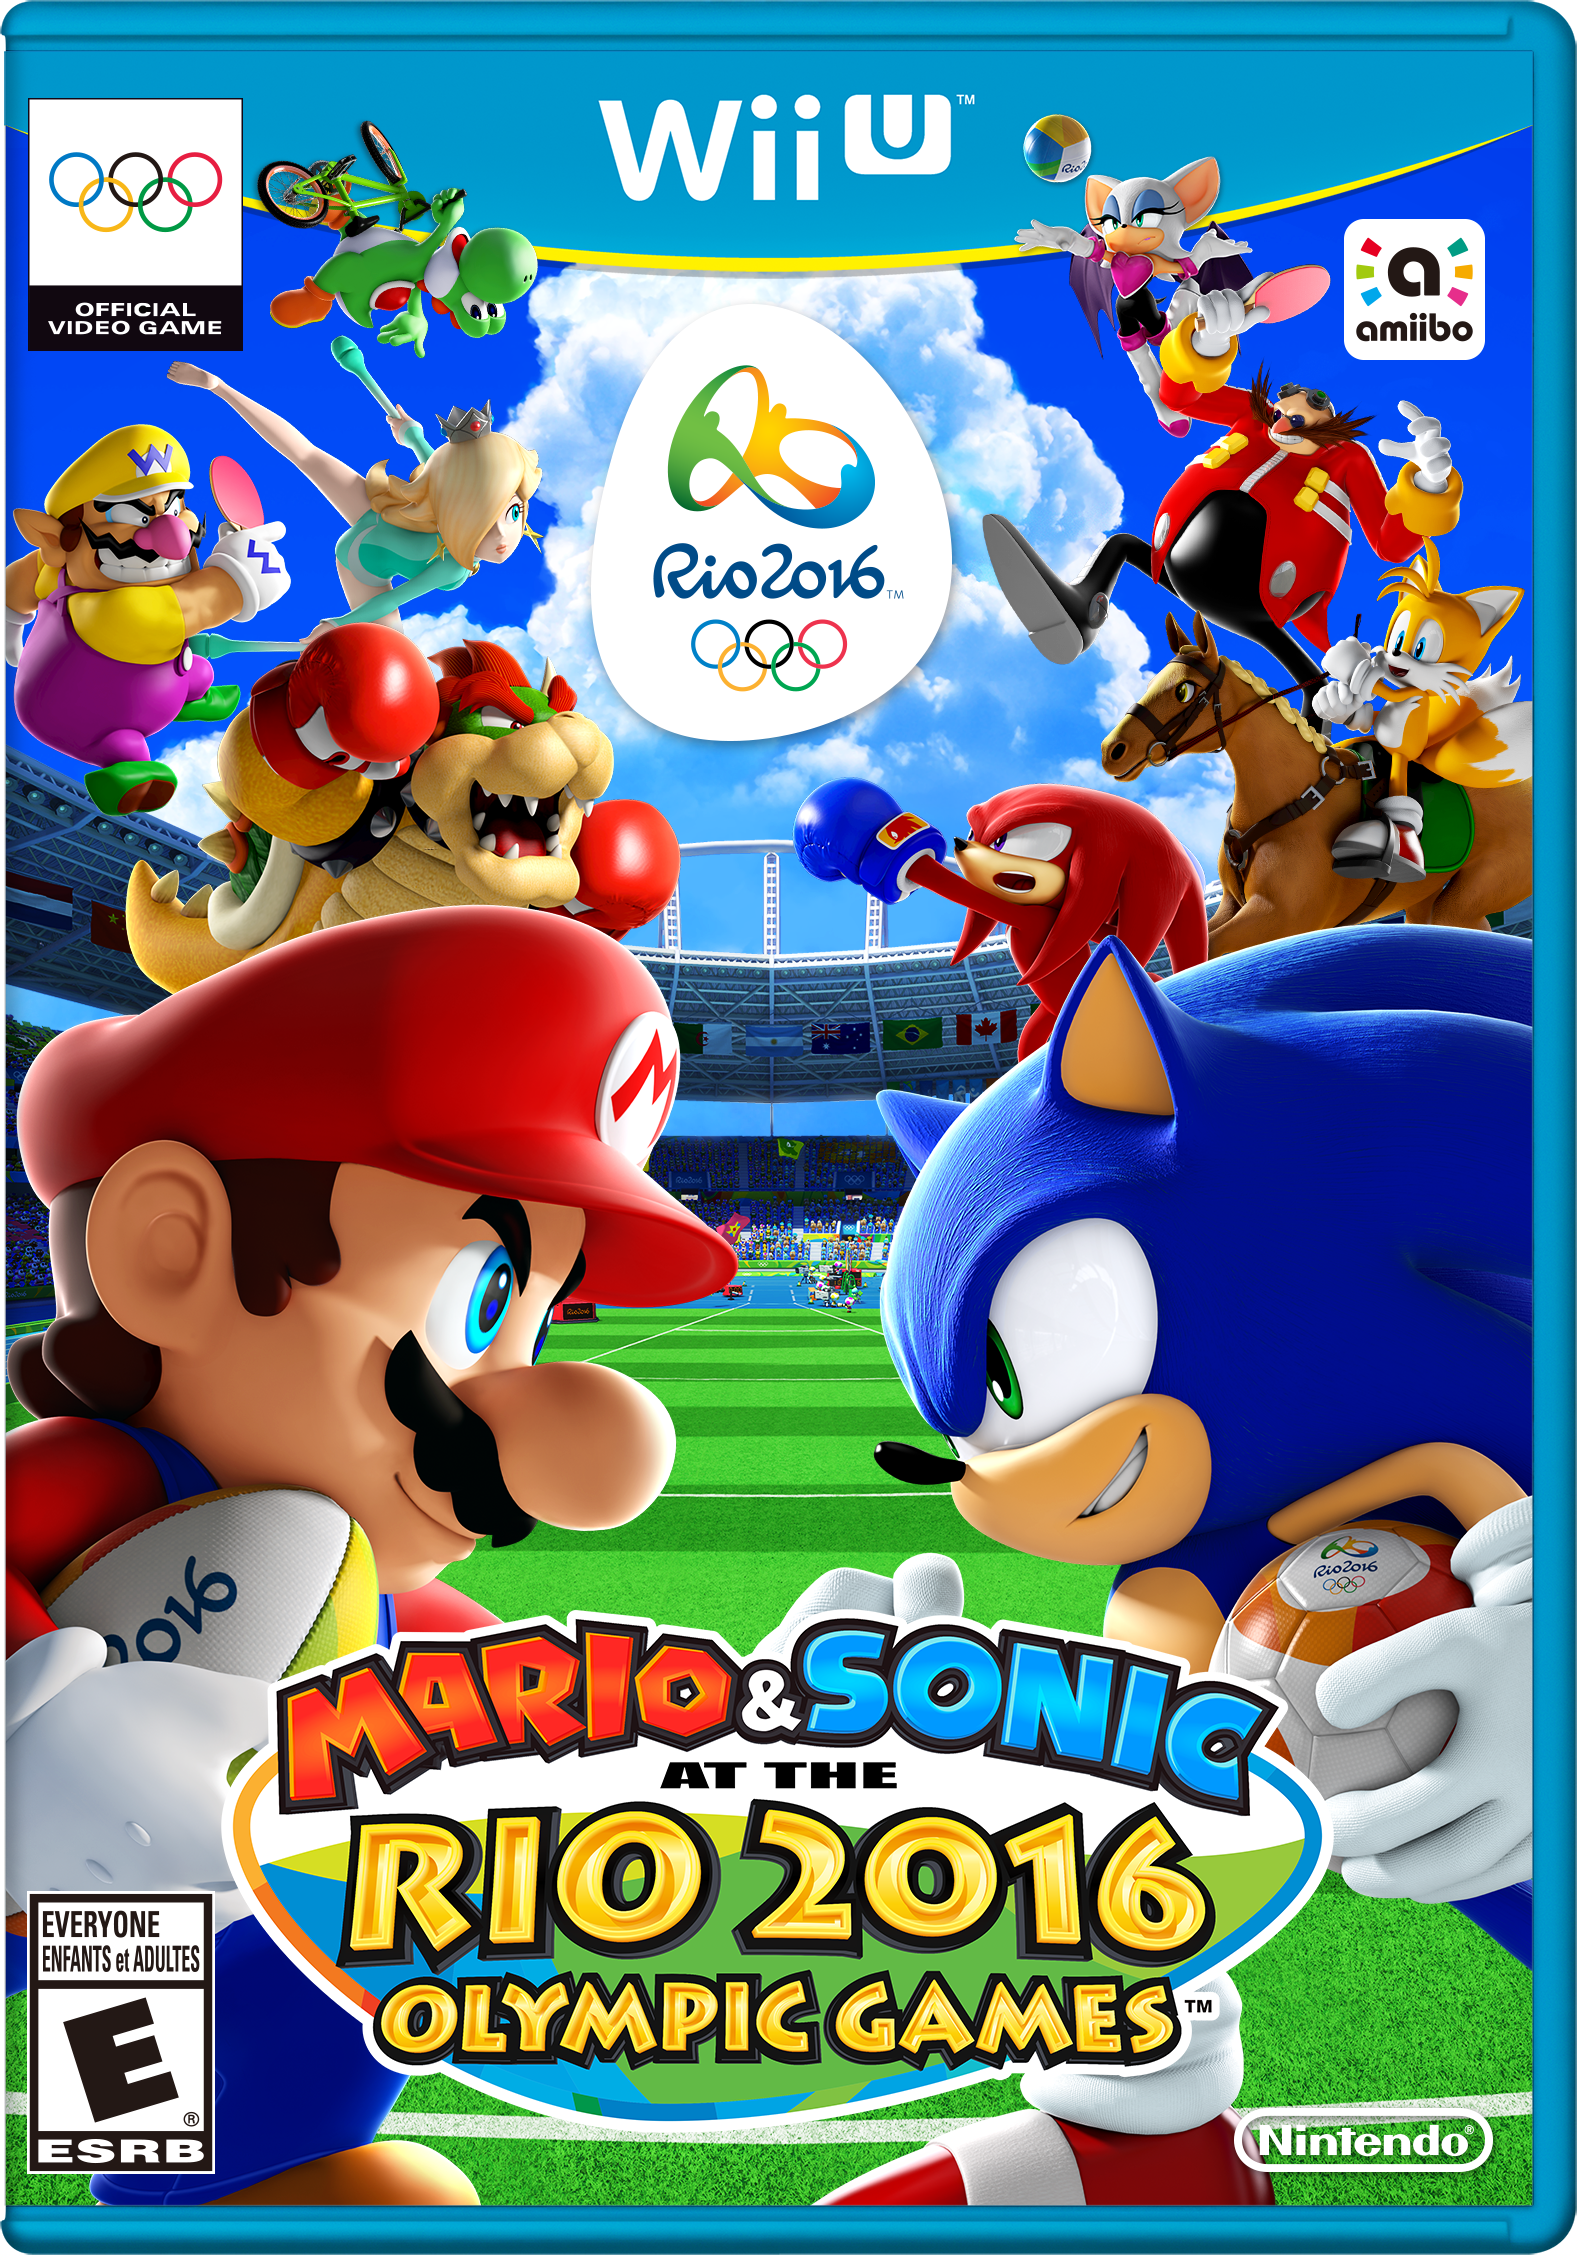 Mario & Sonic at the Rio 2016 Olympic Games | Sonic News